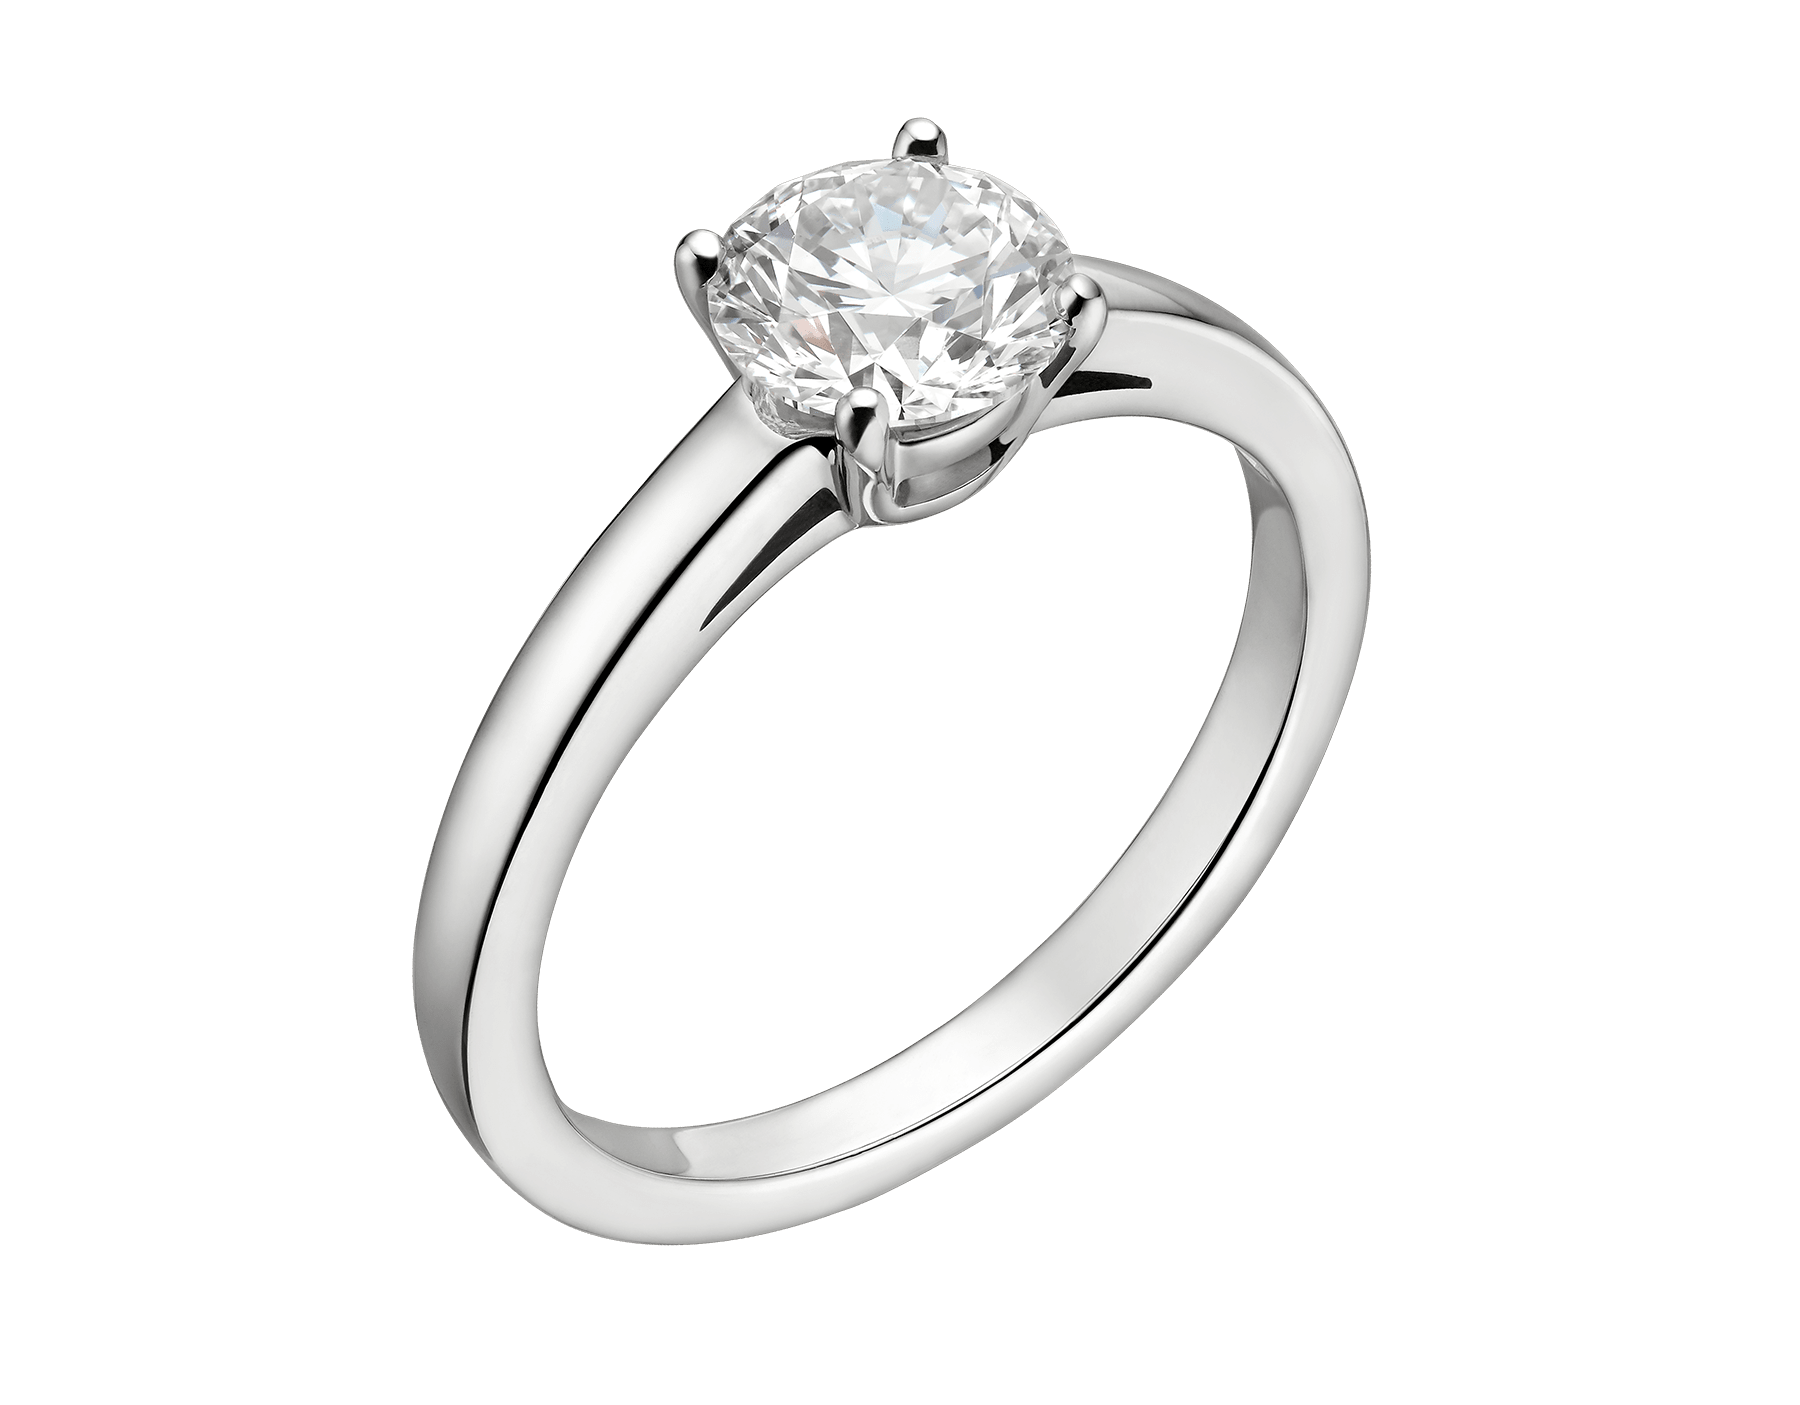 Griffe ring in platinum with round brilliant cut diamond. Available from 0.30 ct. 327827 image 5